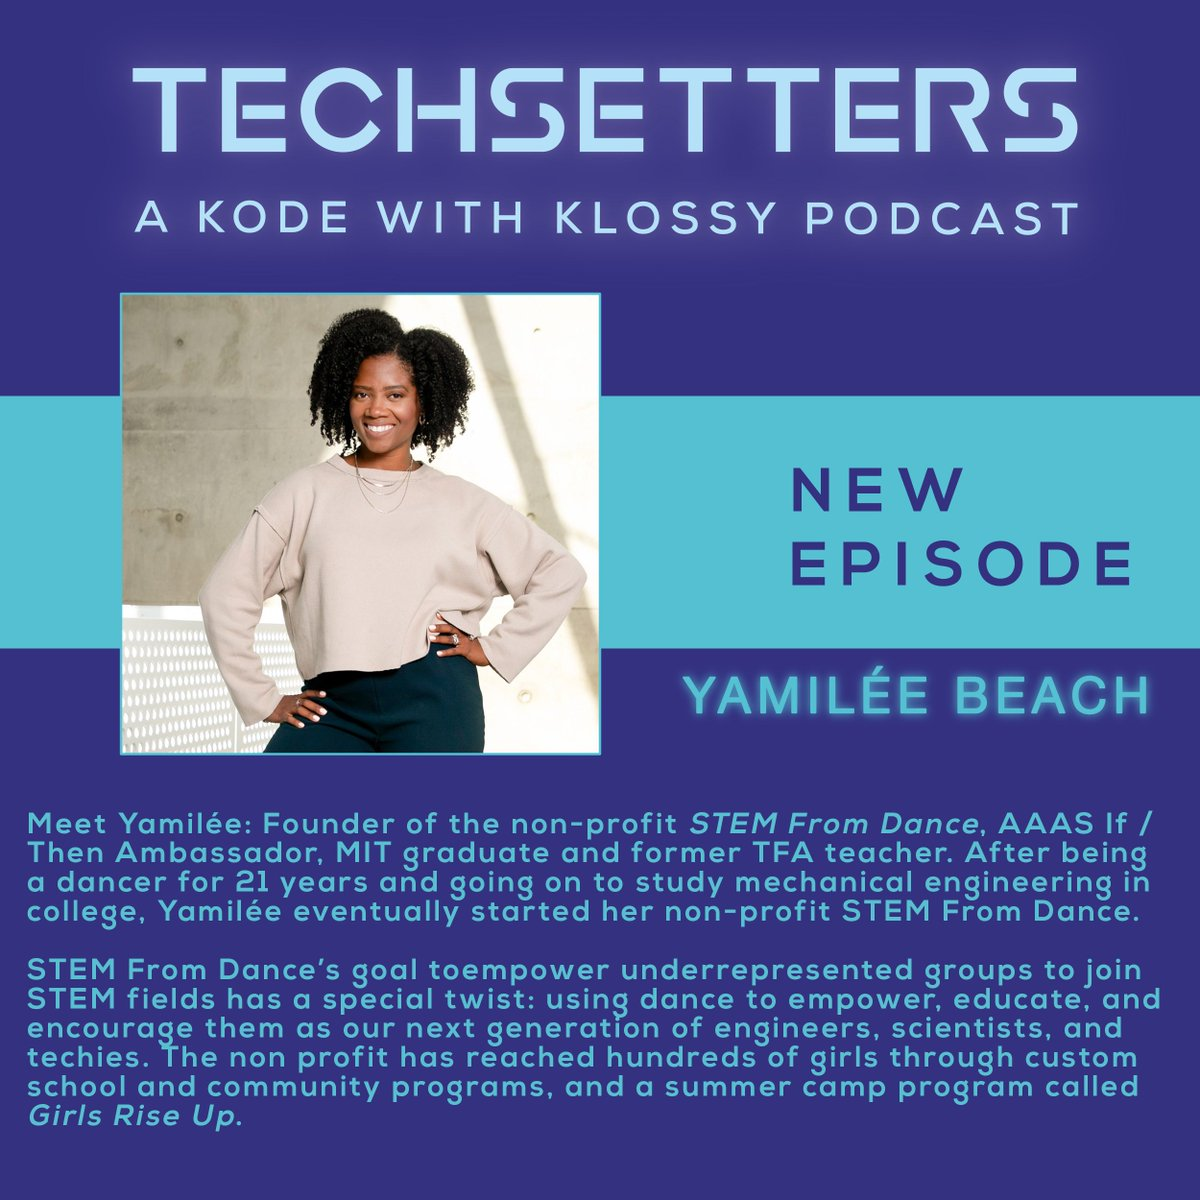 Today on Techsetters we hear from @stemfromdance Founder and AAAS / @IfThenSheCan Ambassador @yamileebeach. Using dance x STEM, Yamilée's goal is to increase representation of young women of color who set off to pursue a STEM education 💃👩💻 https://t.co/12uEAeGDEZ https://t.co/vEufBXnR8W